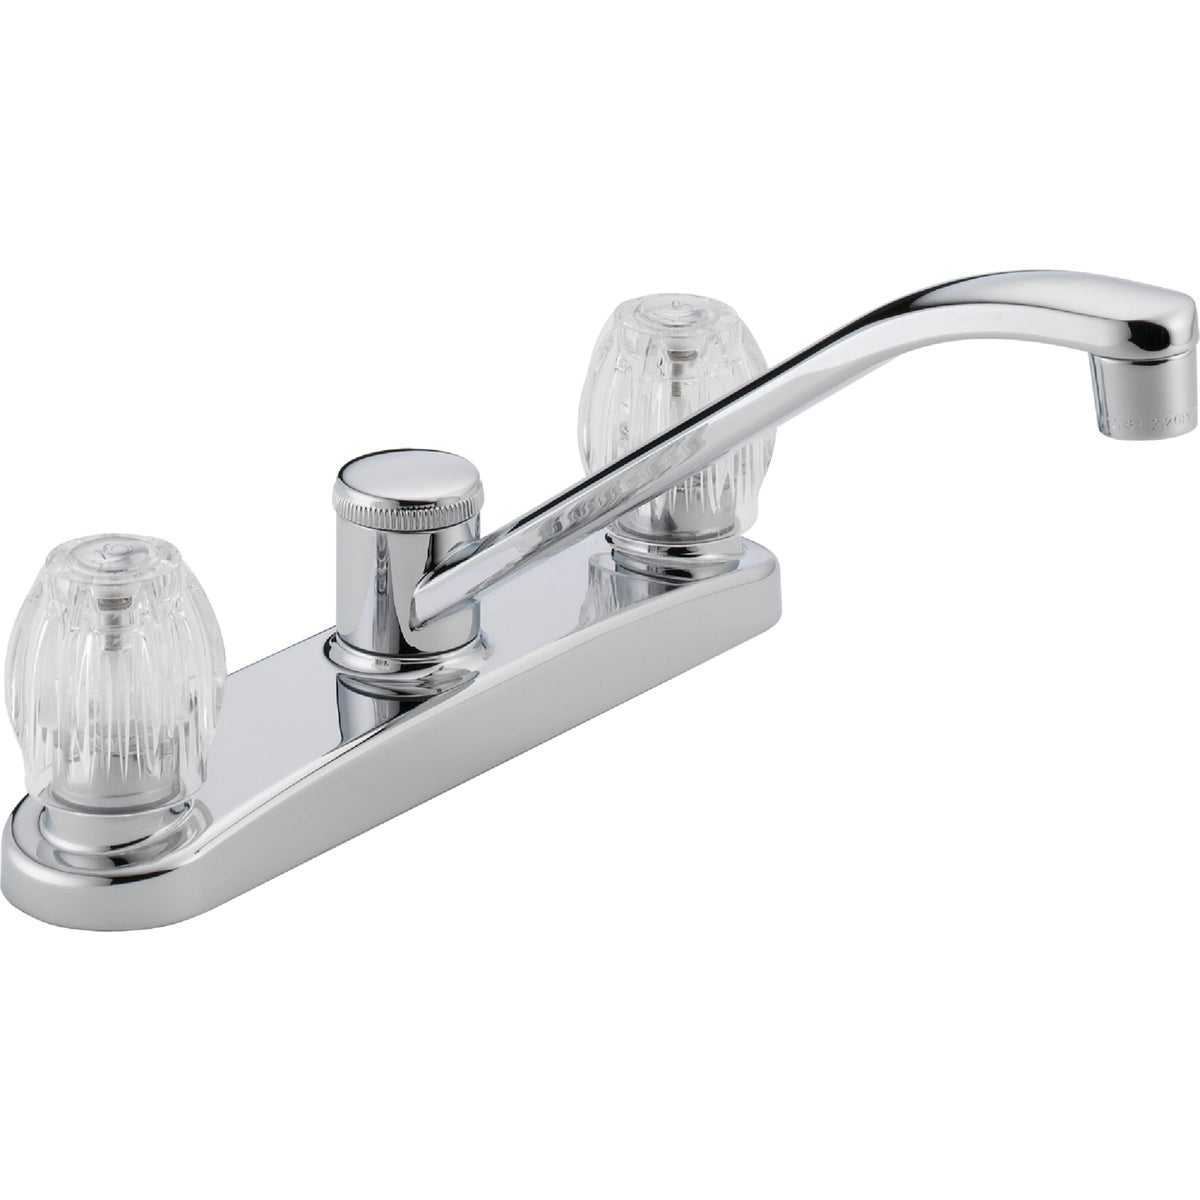 2H CHROME KITCHEN FAUCET - P220LF by Delta Faucet Co